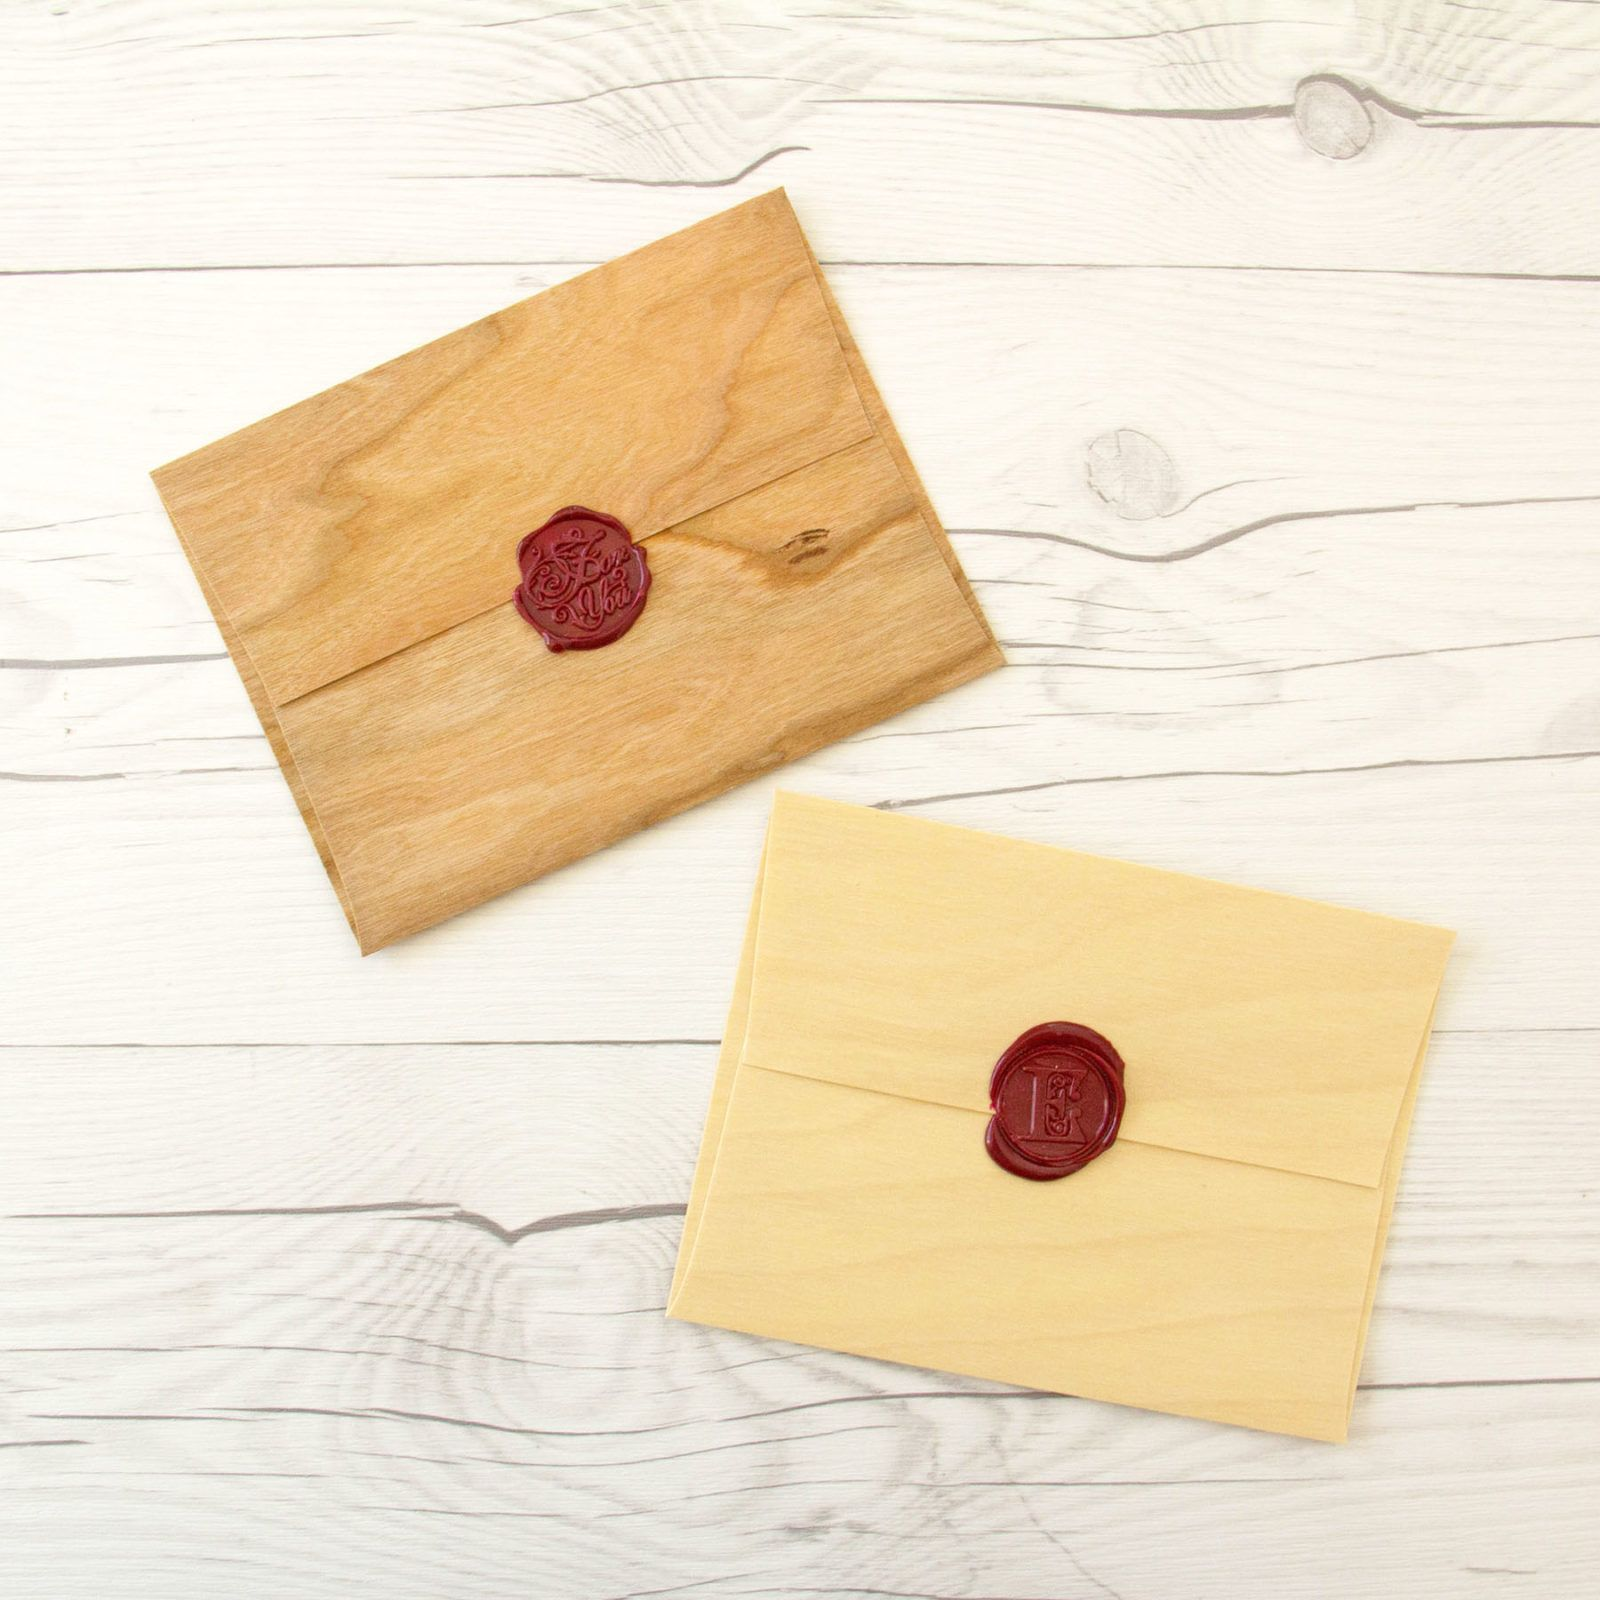 Signed & Sealed Wax seals on Real Wood Envelopes Wax